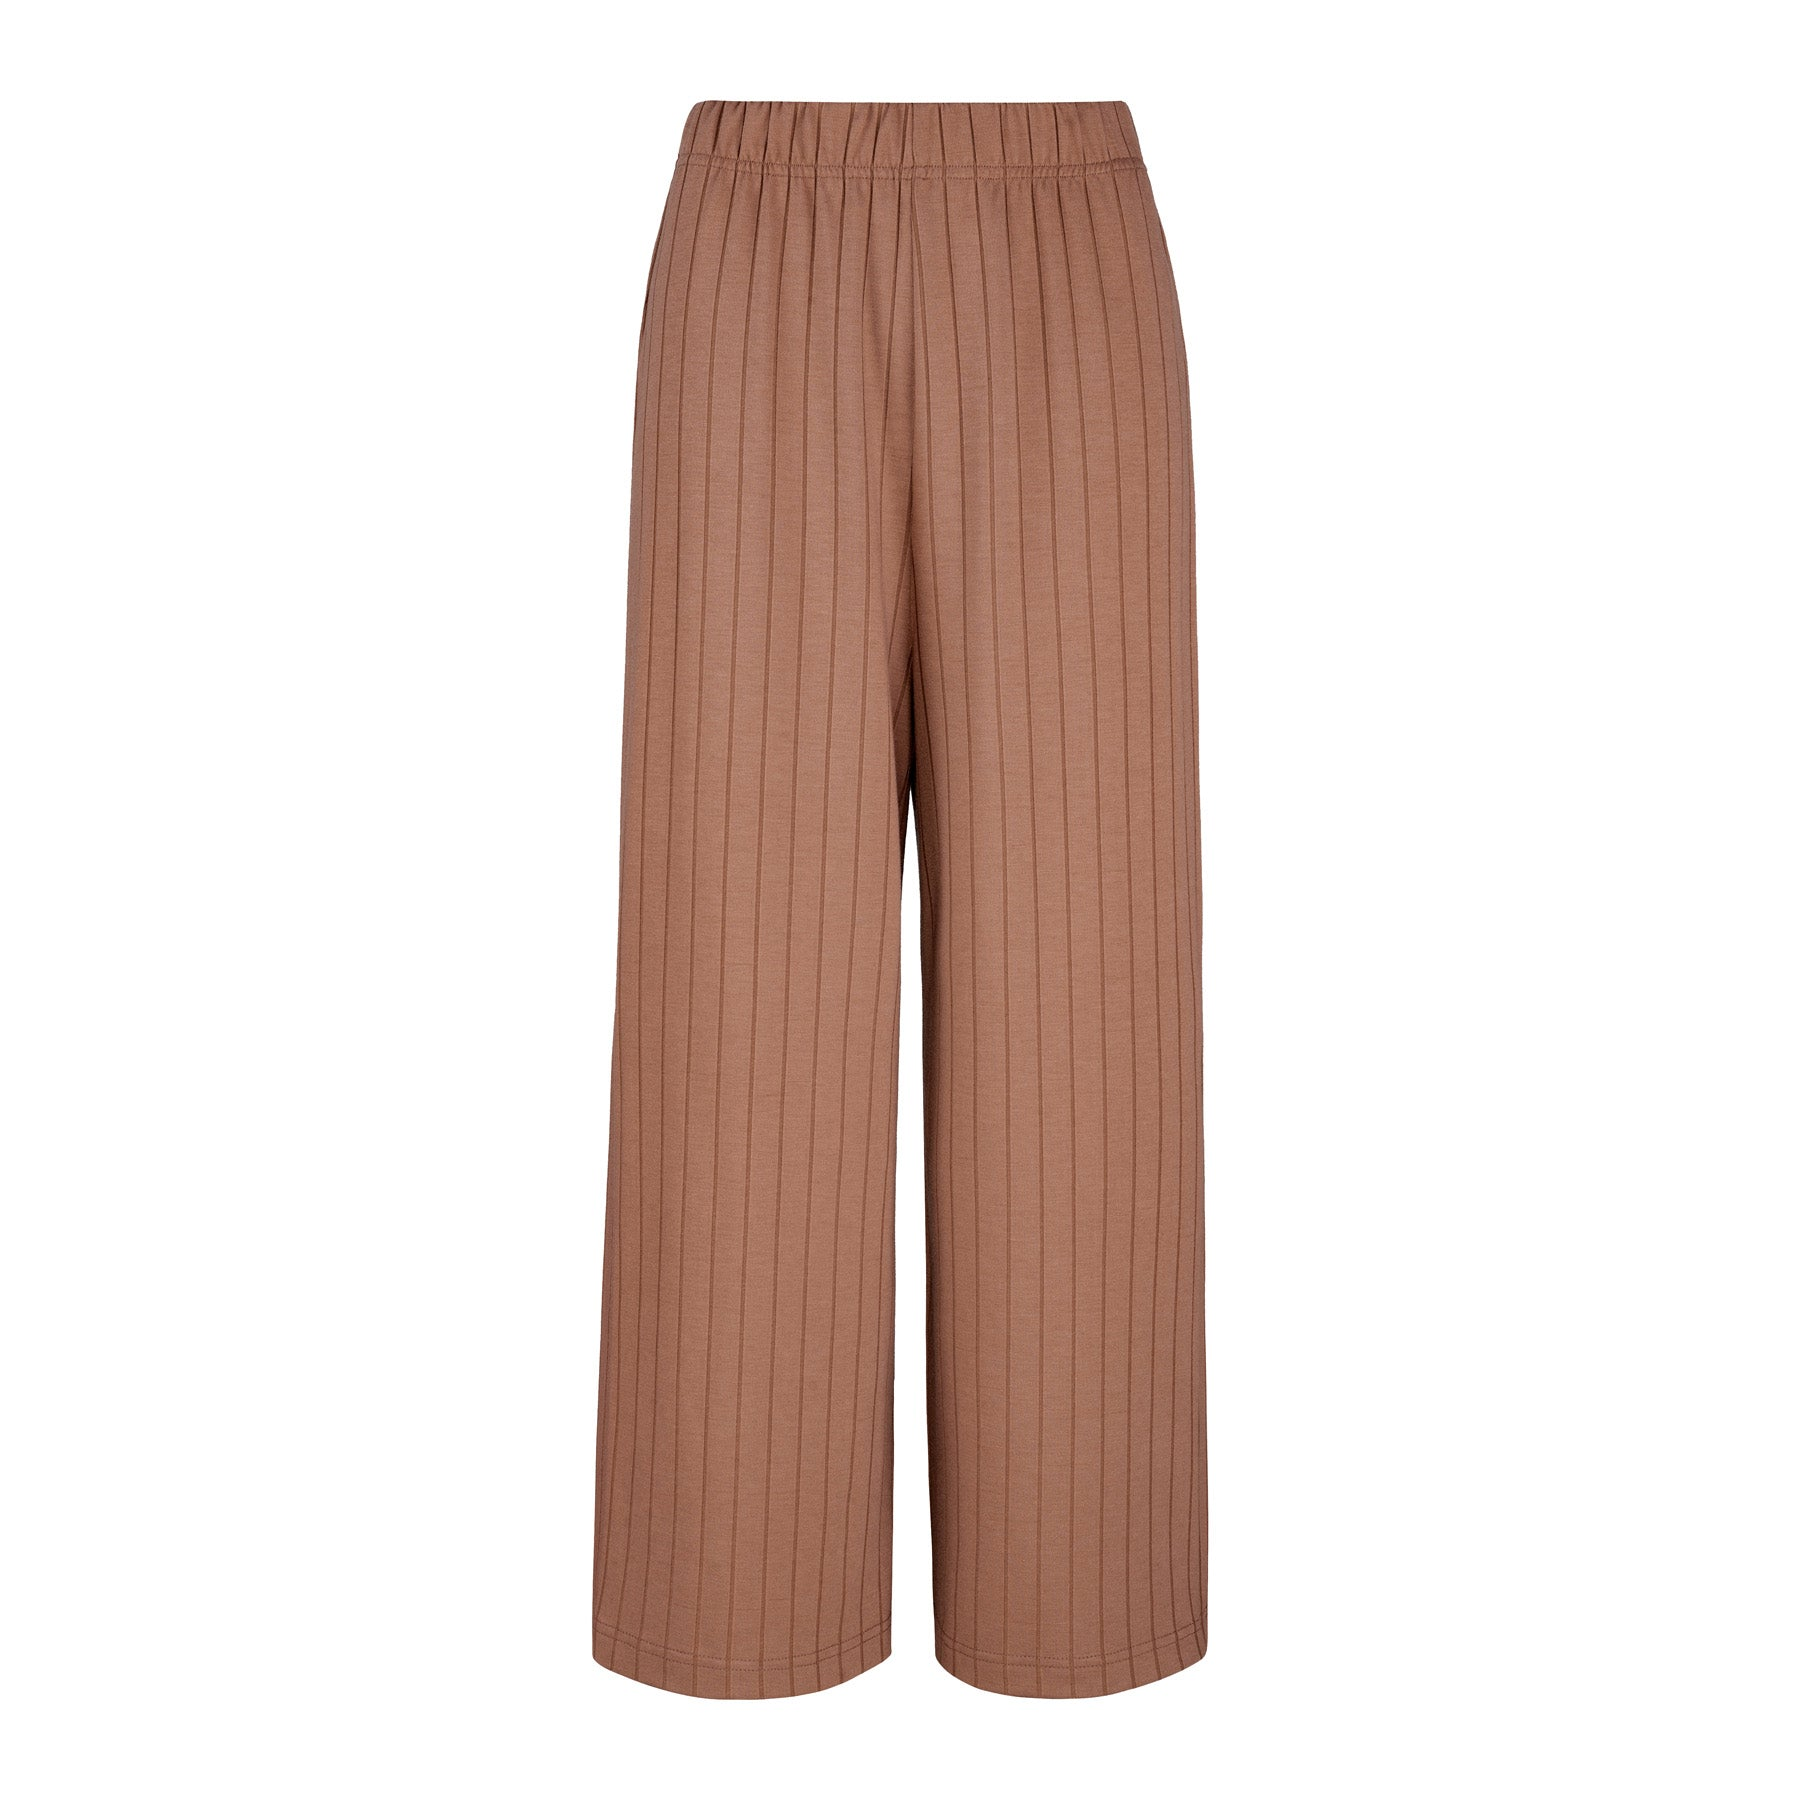 THE GRACE KNIT PANT